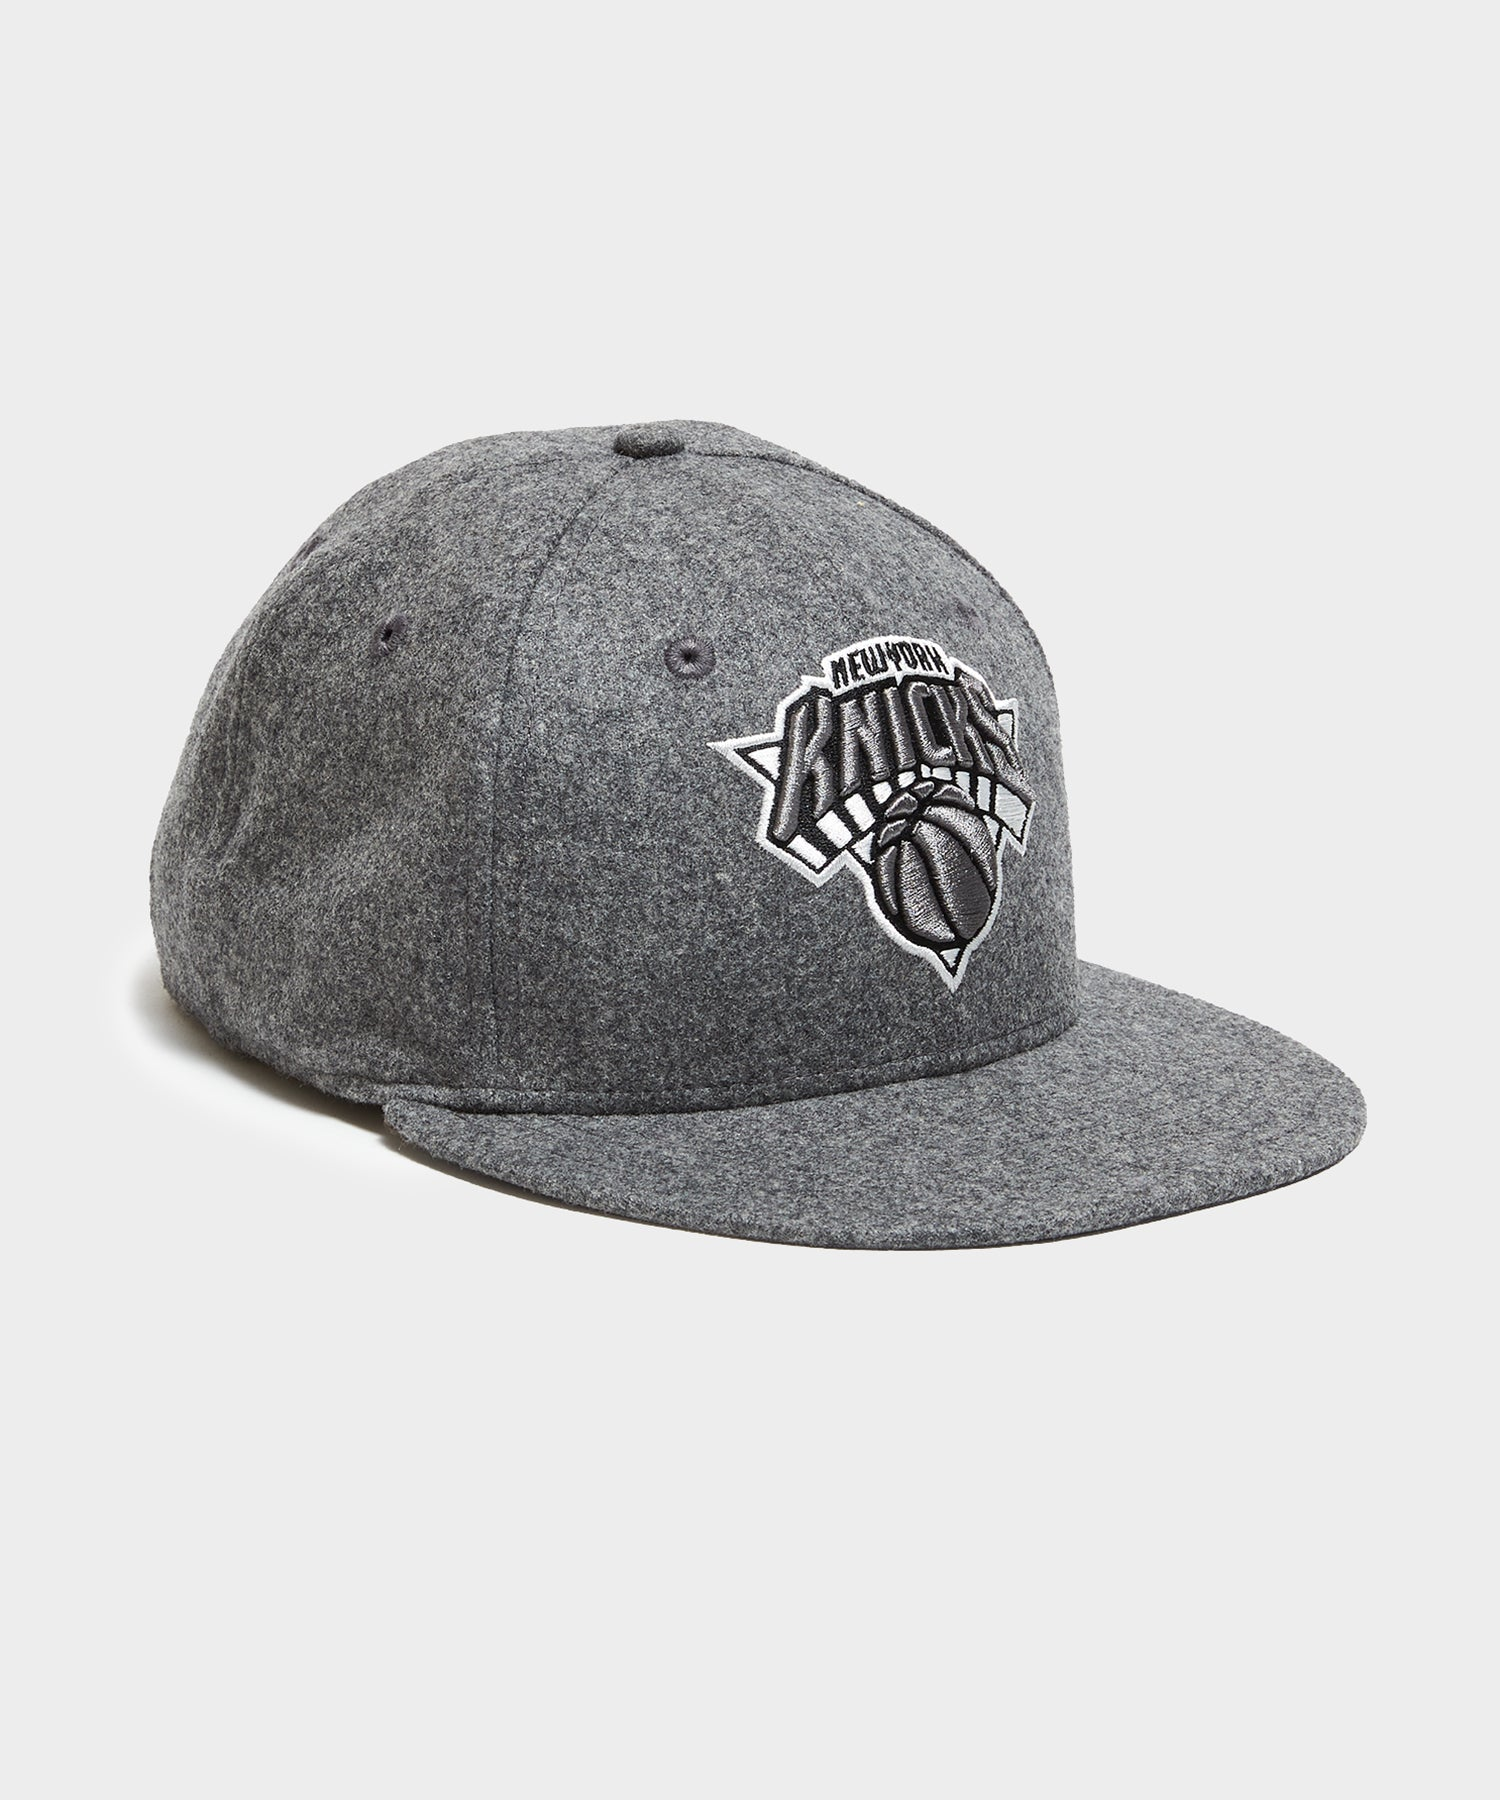 Todd Snyder + New Era New York Pack NY Knicks